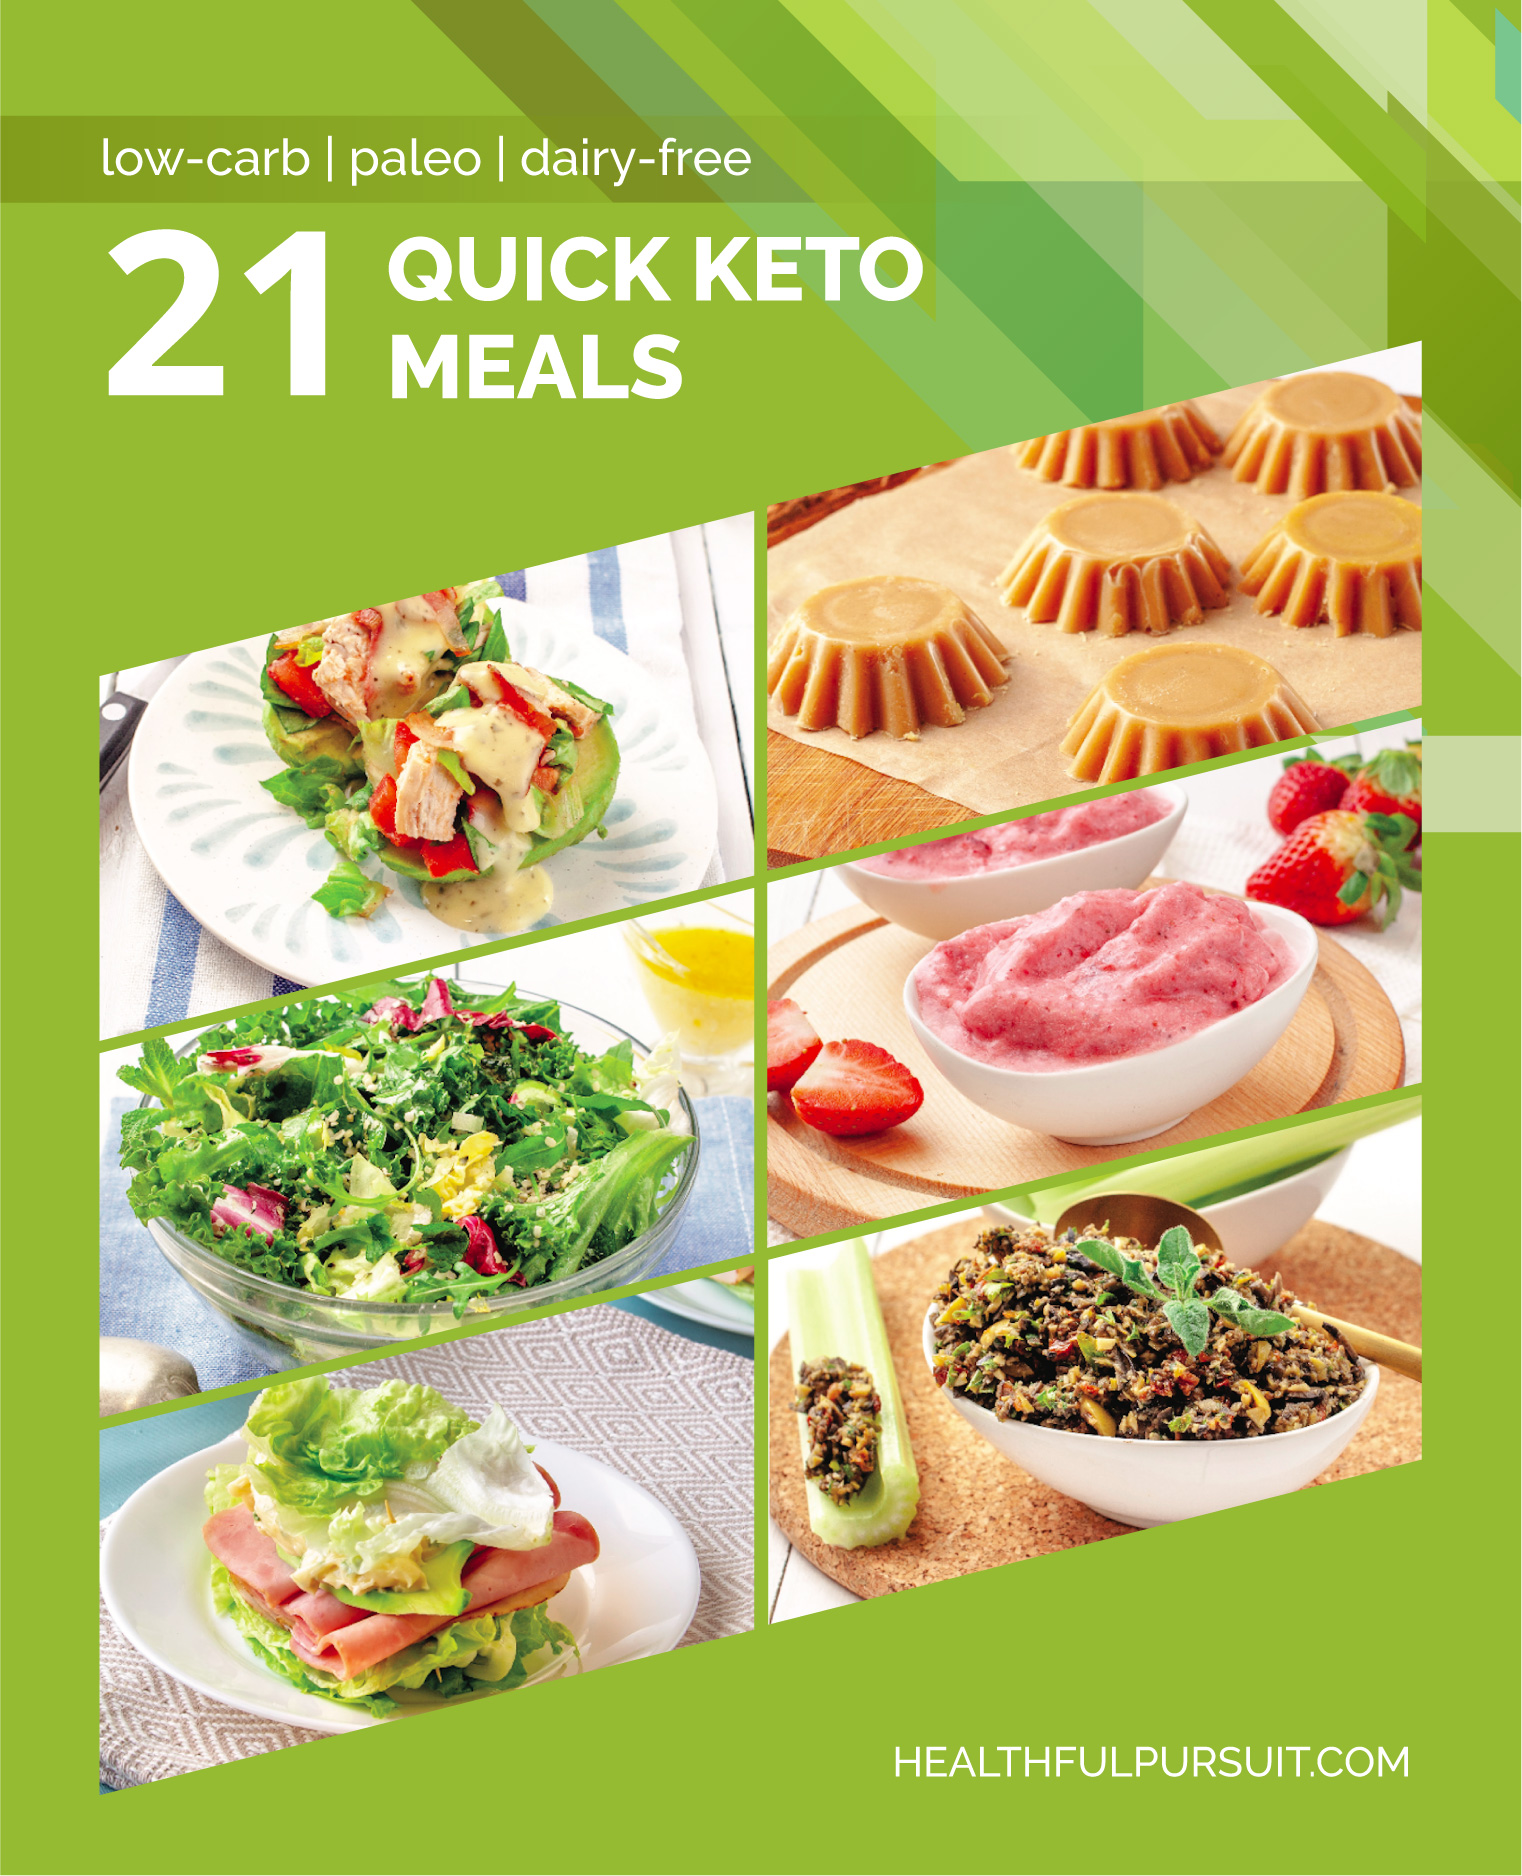 21 Quick Keto Meals #keto #lowcarb #highfat #theketodiet